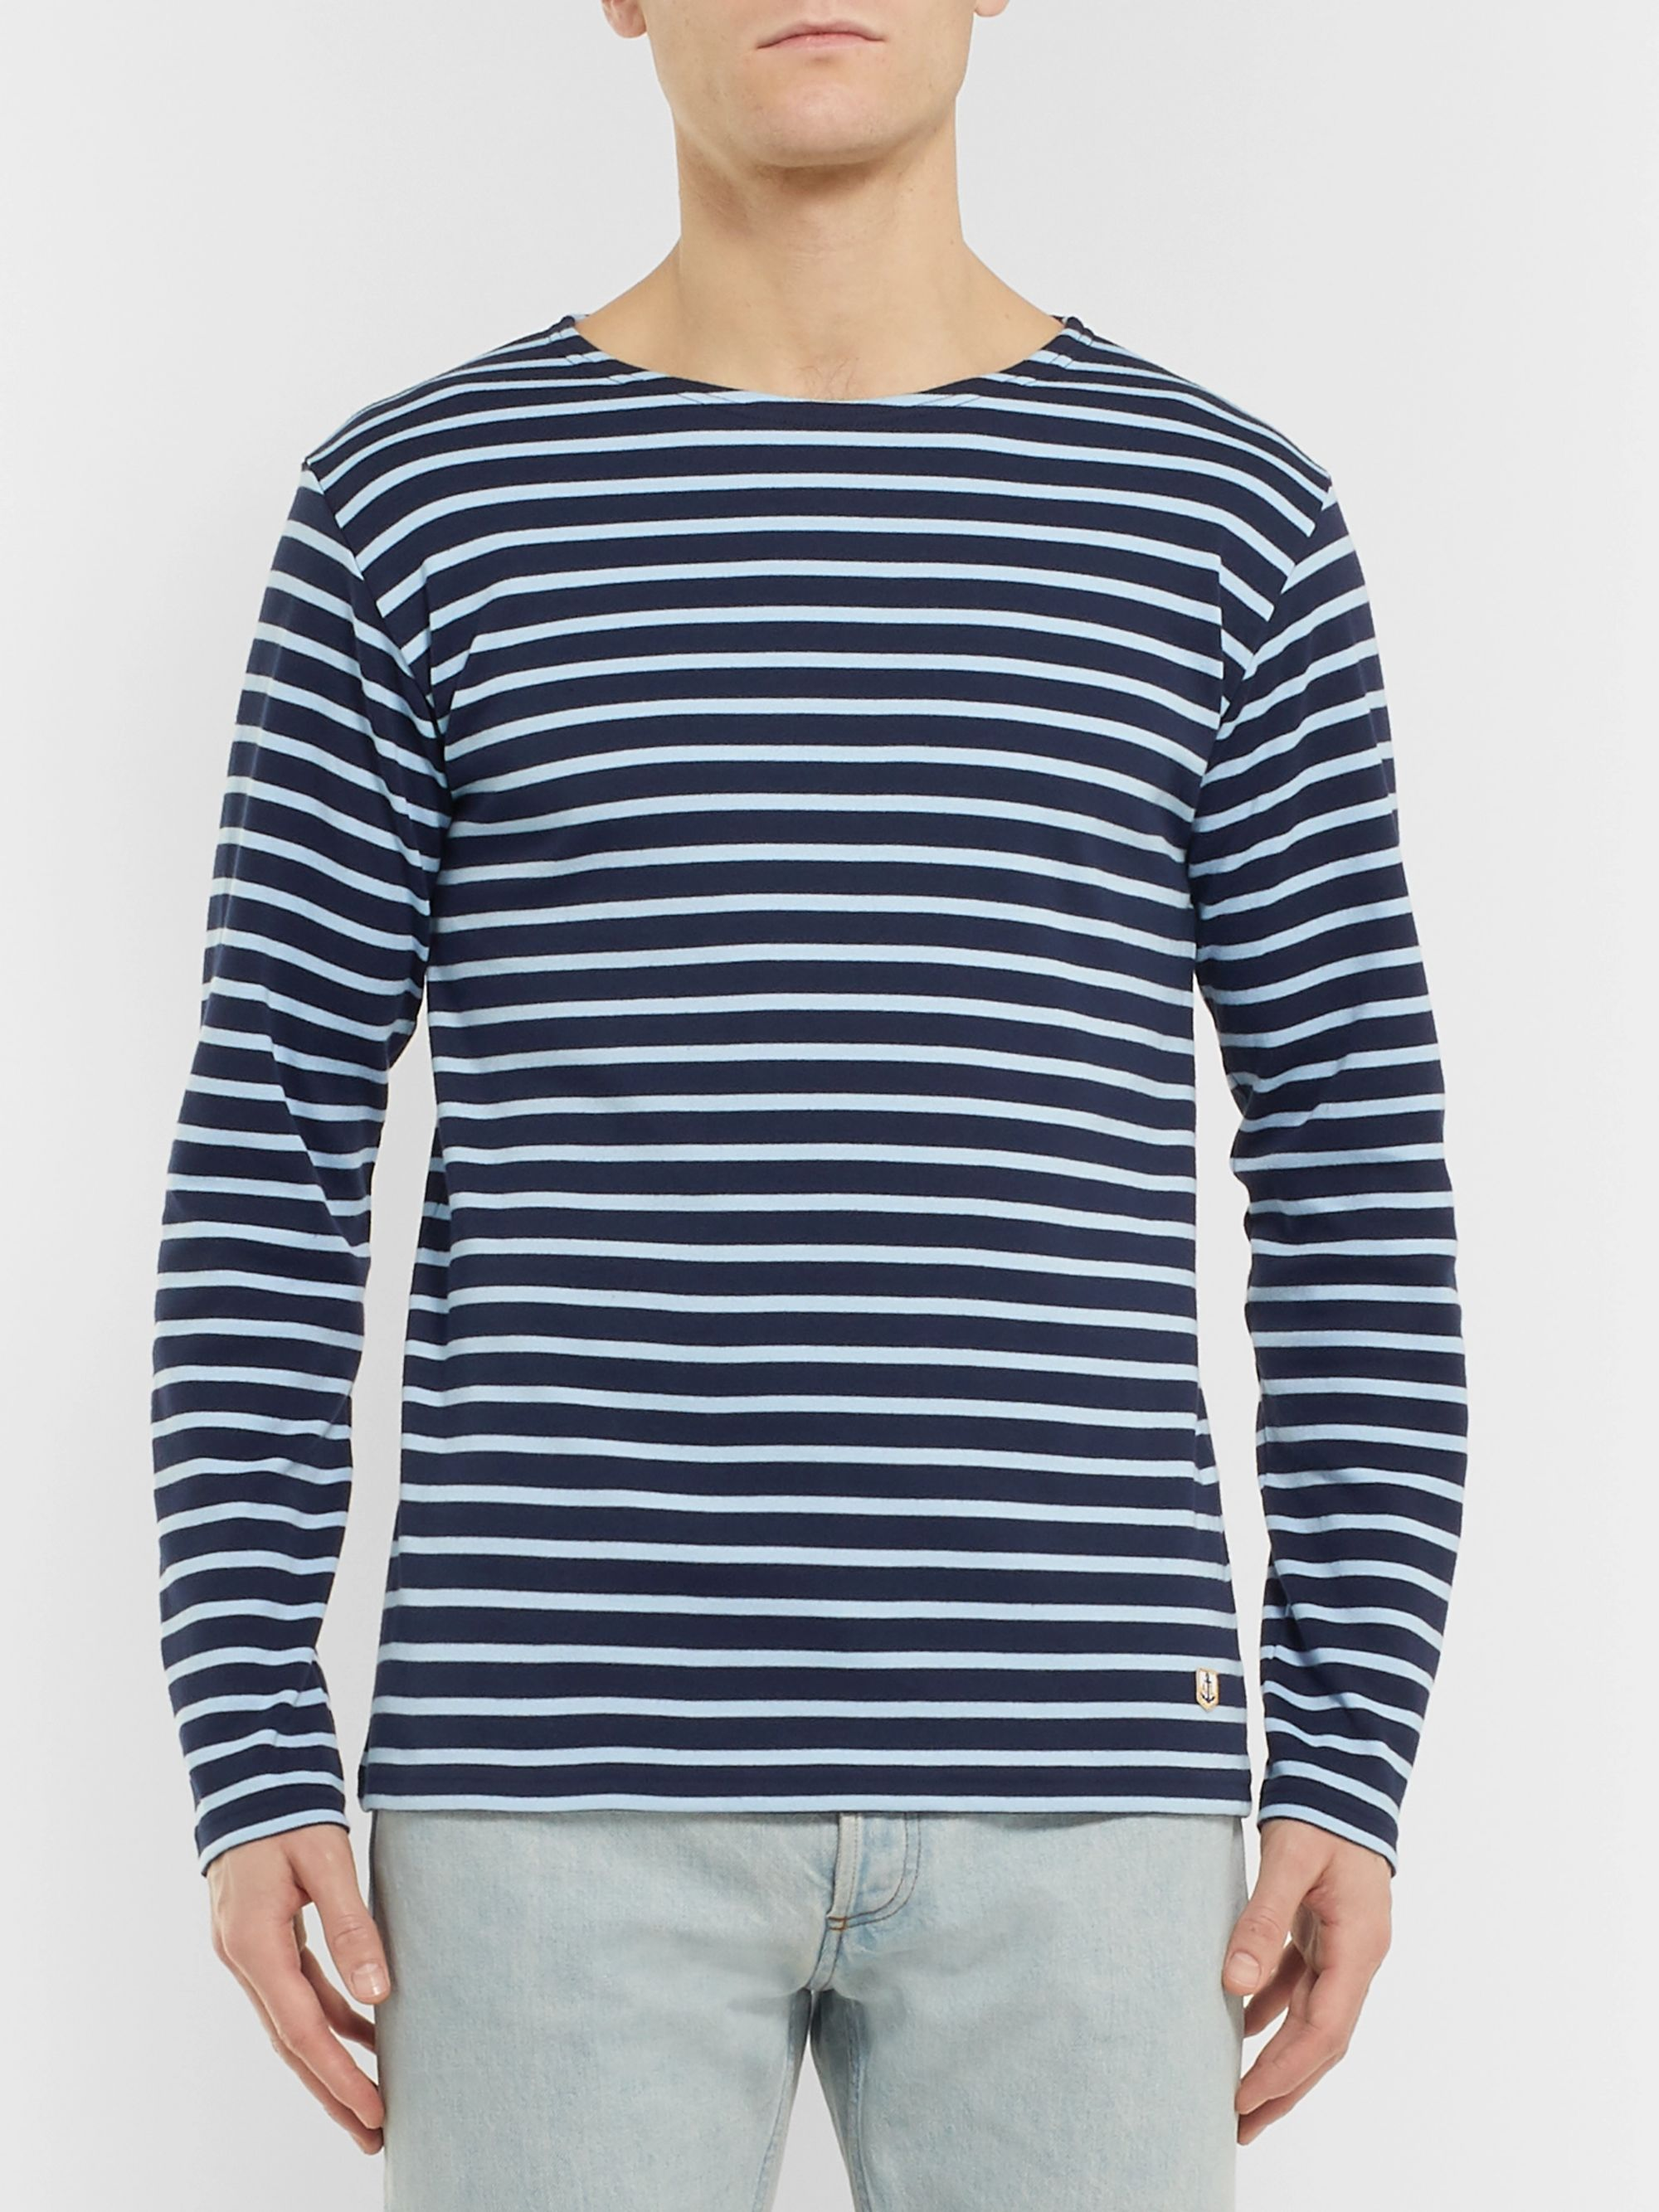 Armor Lux Striped Cotton-Jersey T-Shirt